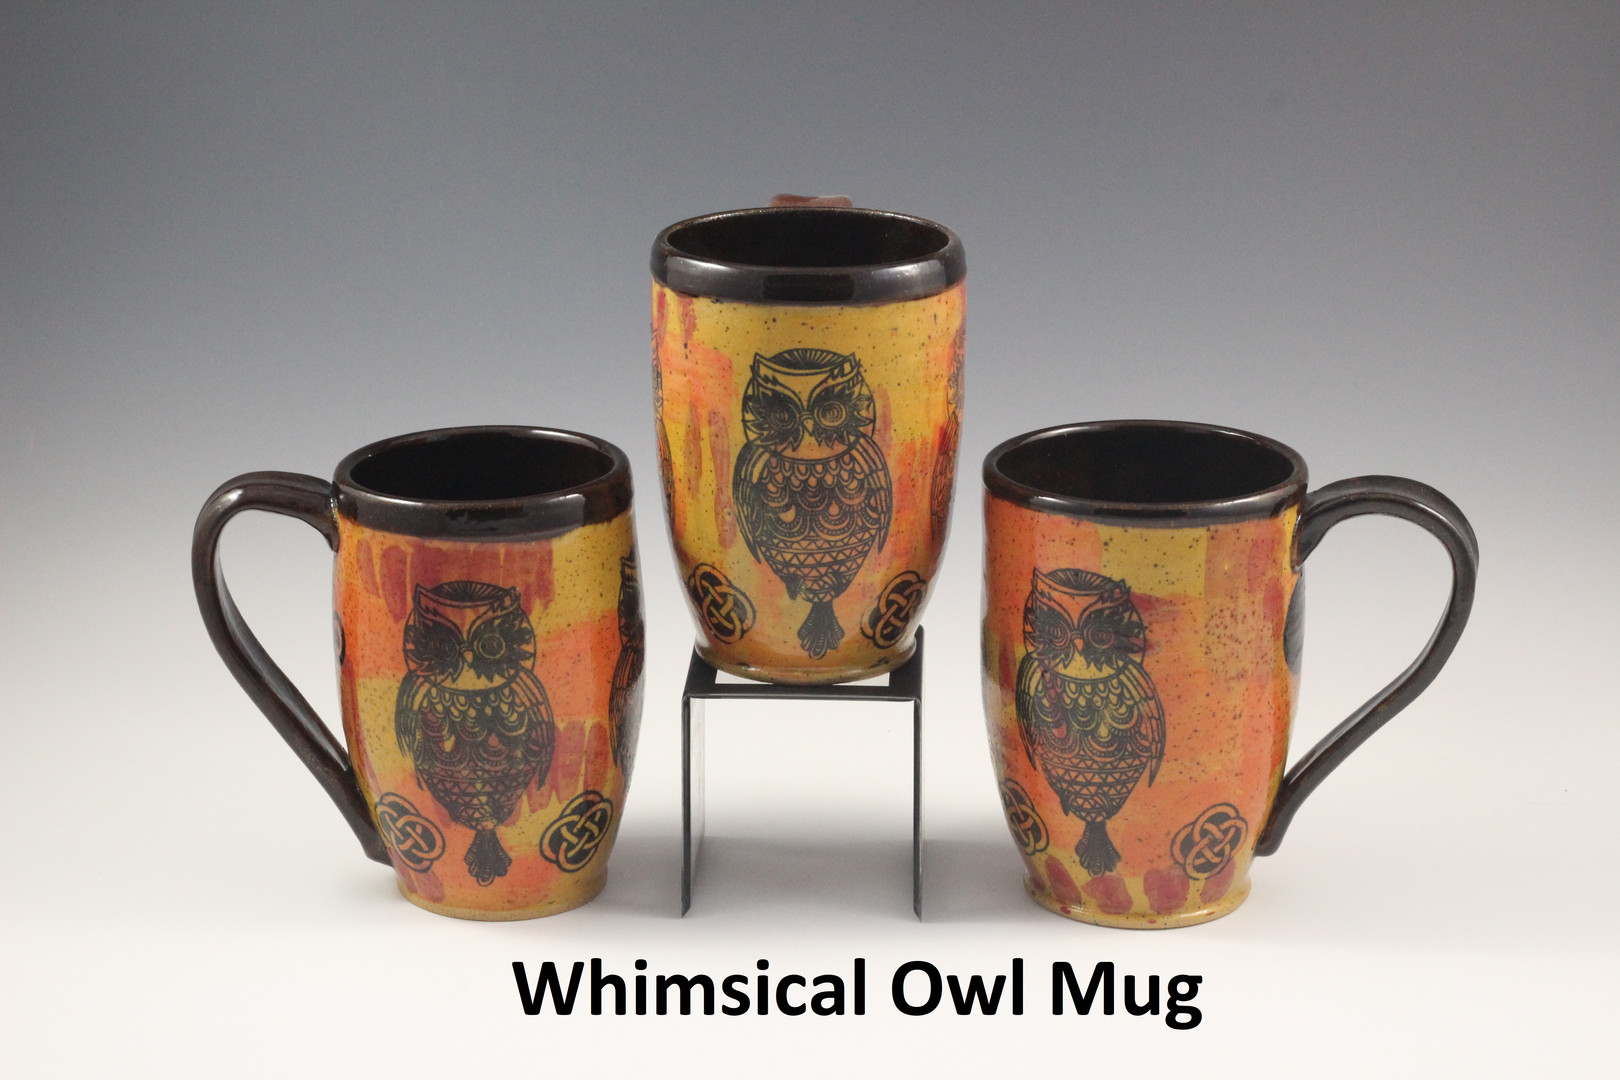 Whimsical Owl Mugs